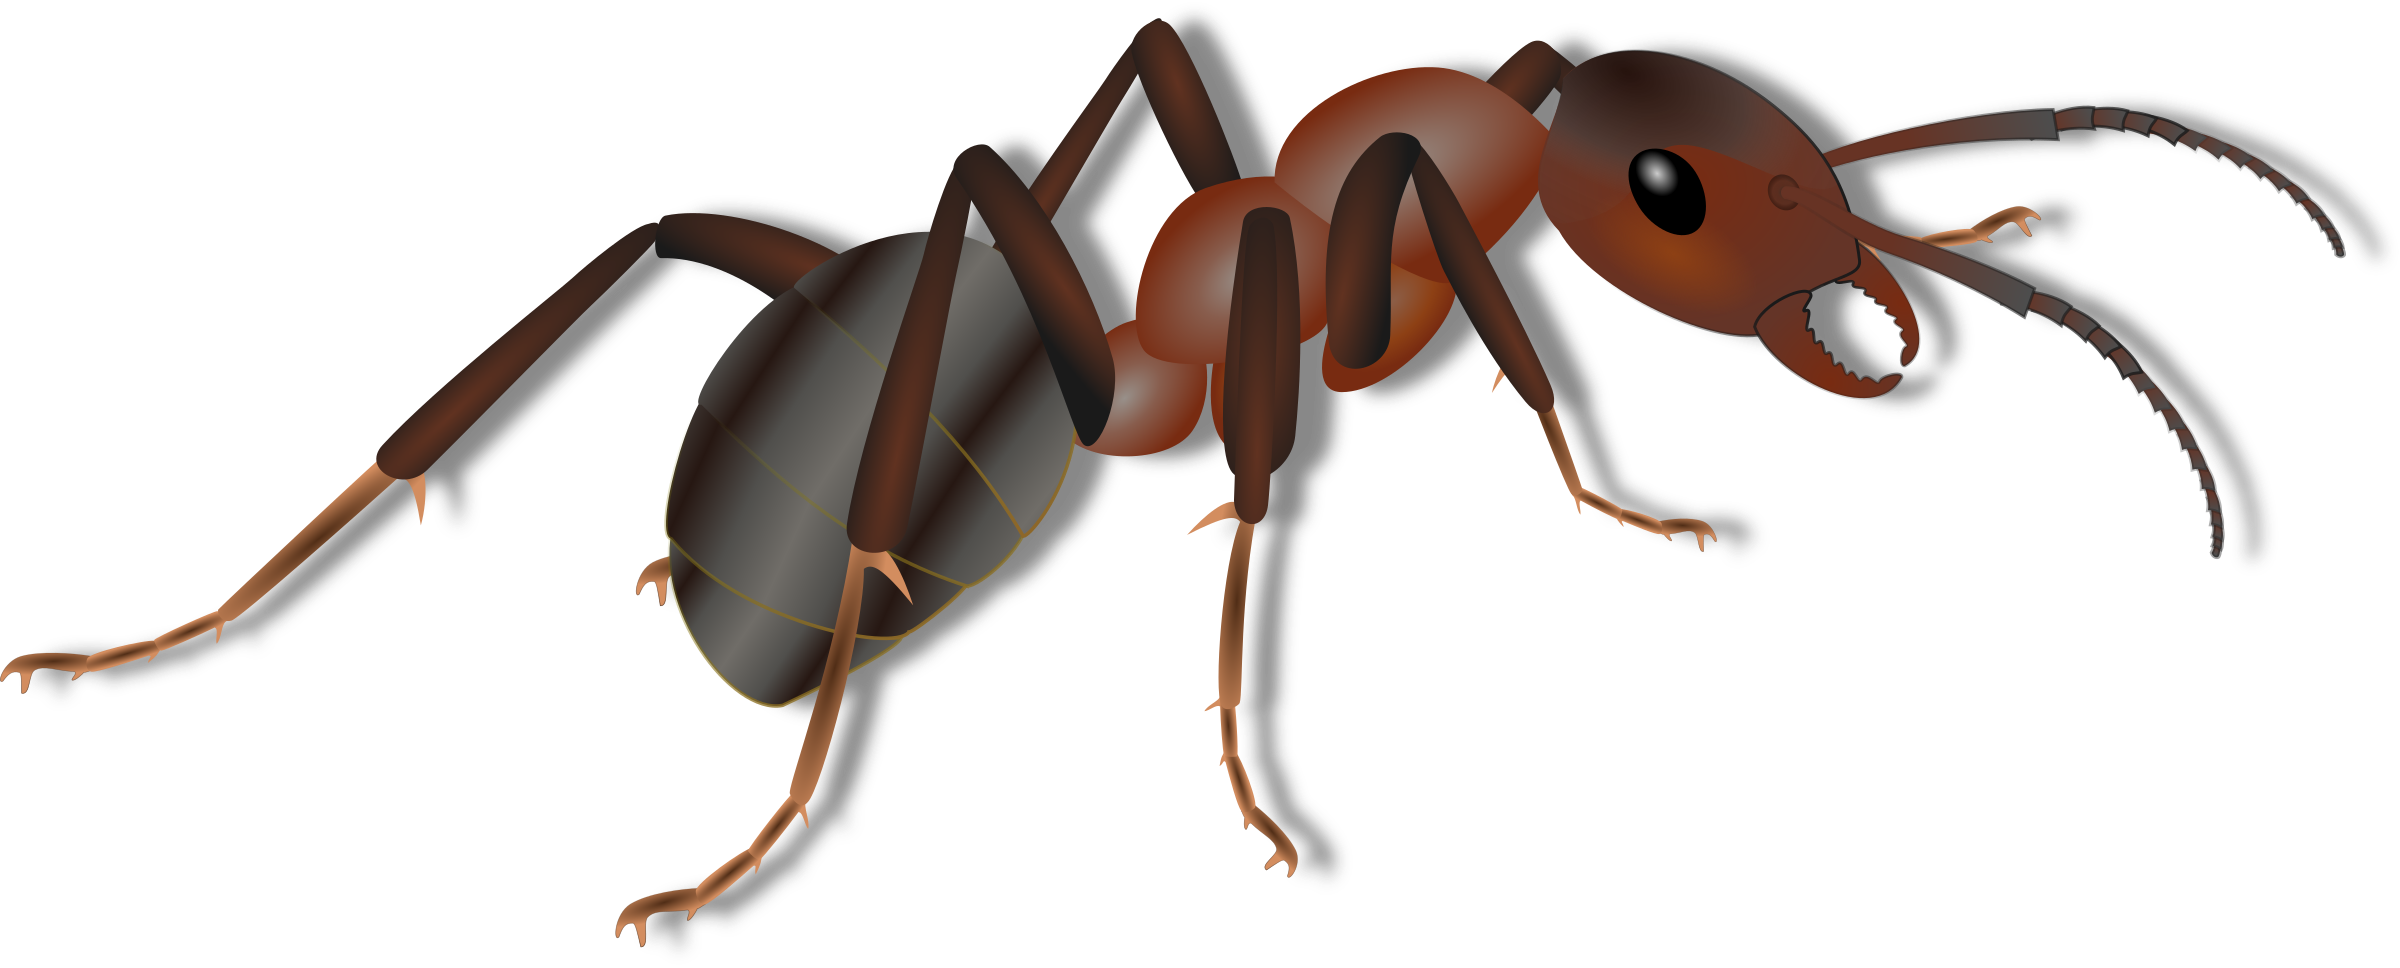 Ants transparent background free. Insects clipart brown ant